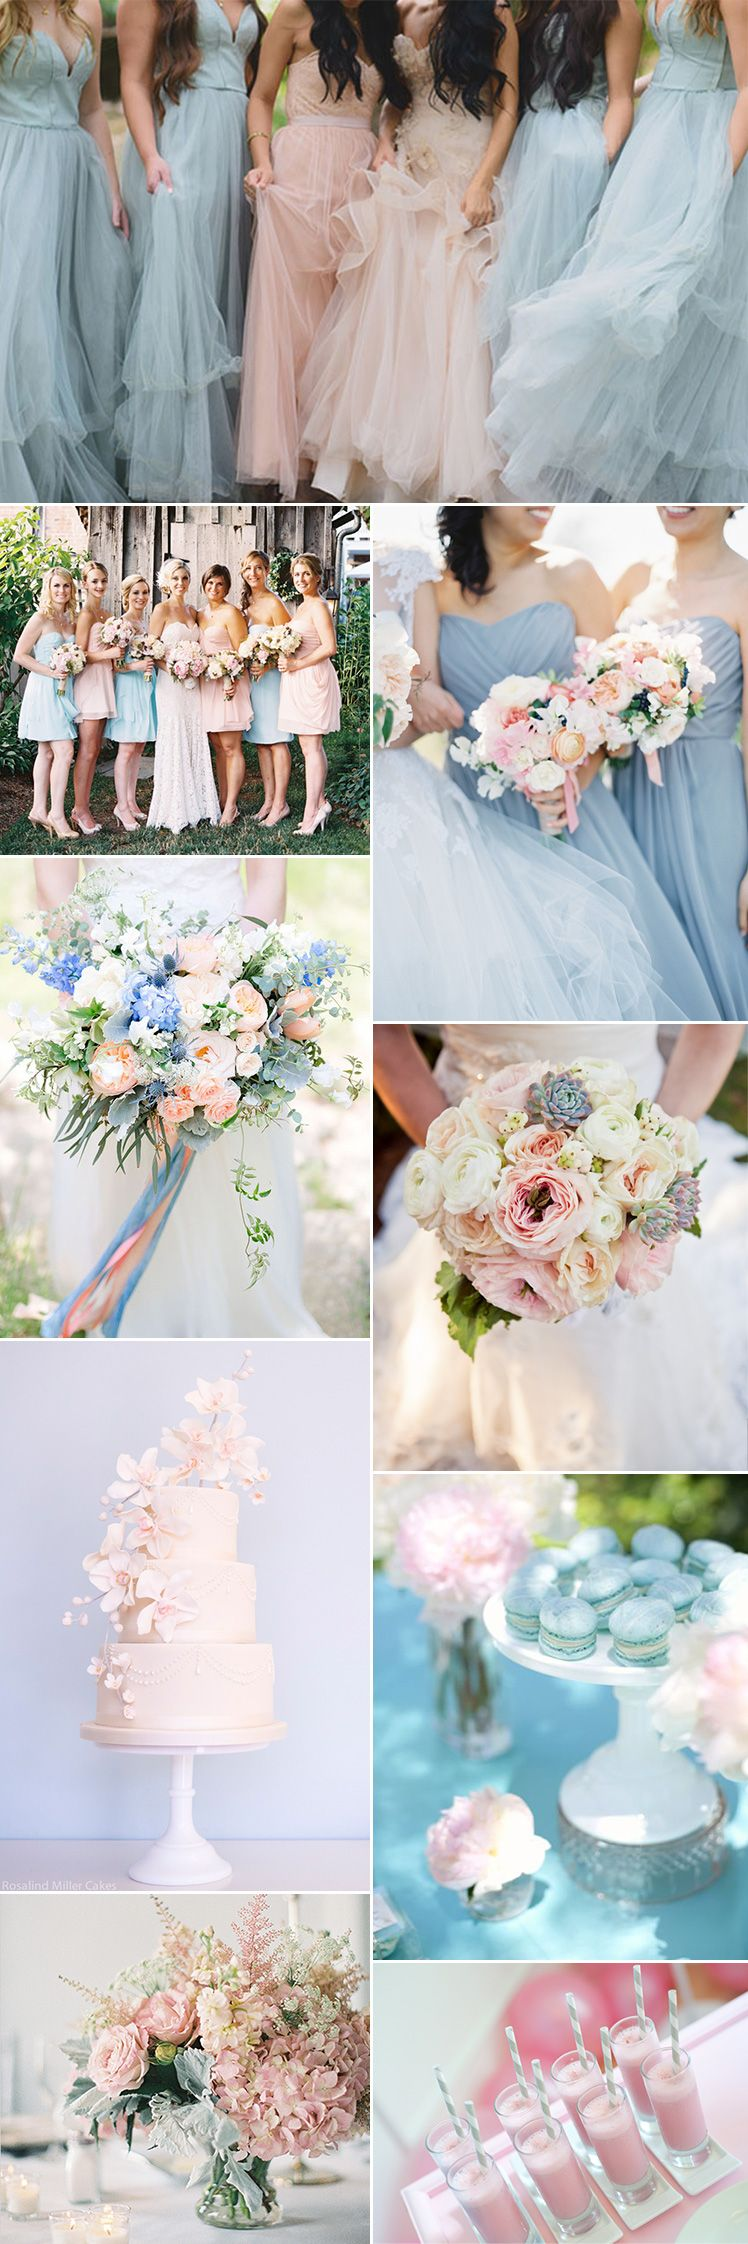 Pantone Has Chosen Two Colors For 2016 Rose Quartz And Serenity We Show You How These Work Perfectly A Pastel Wedding Theme